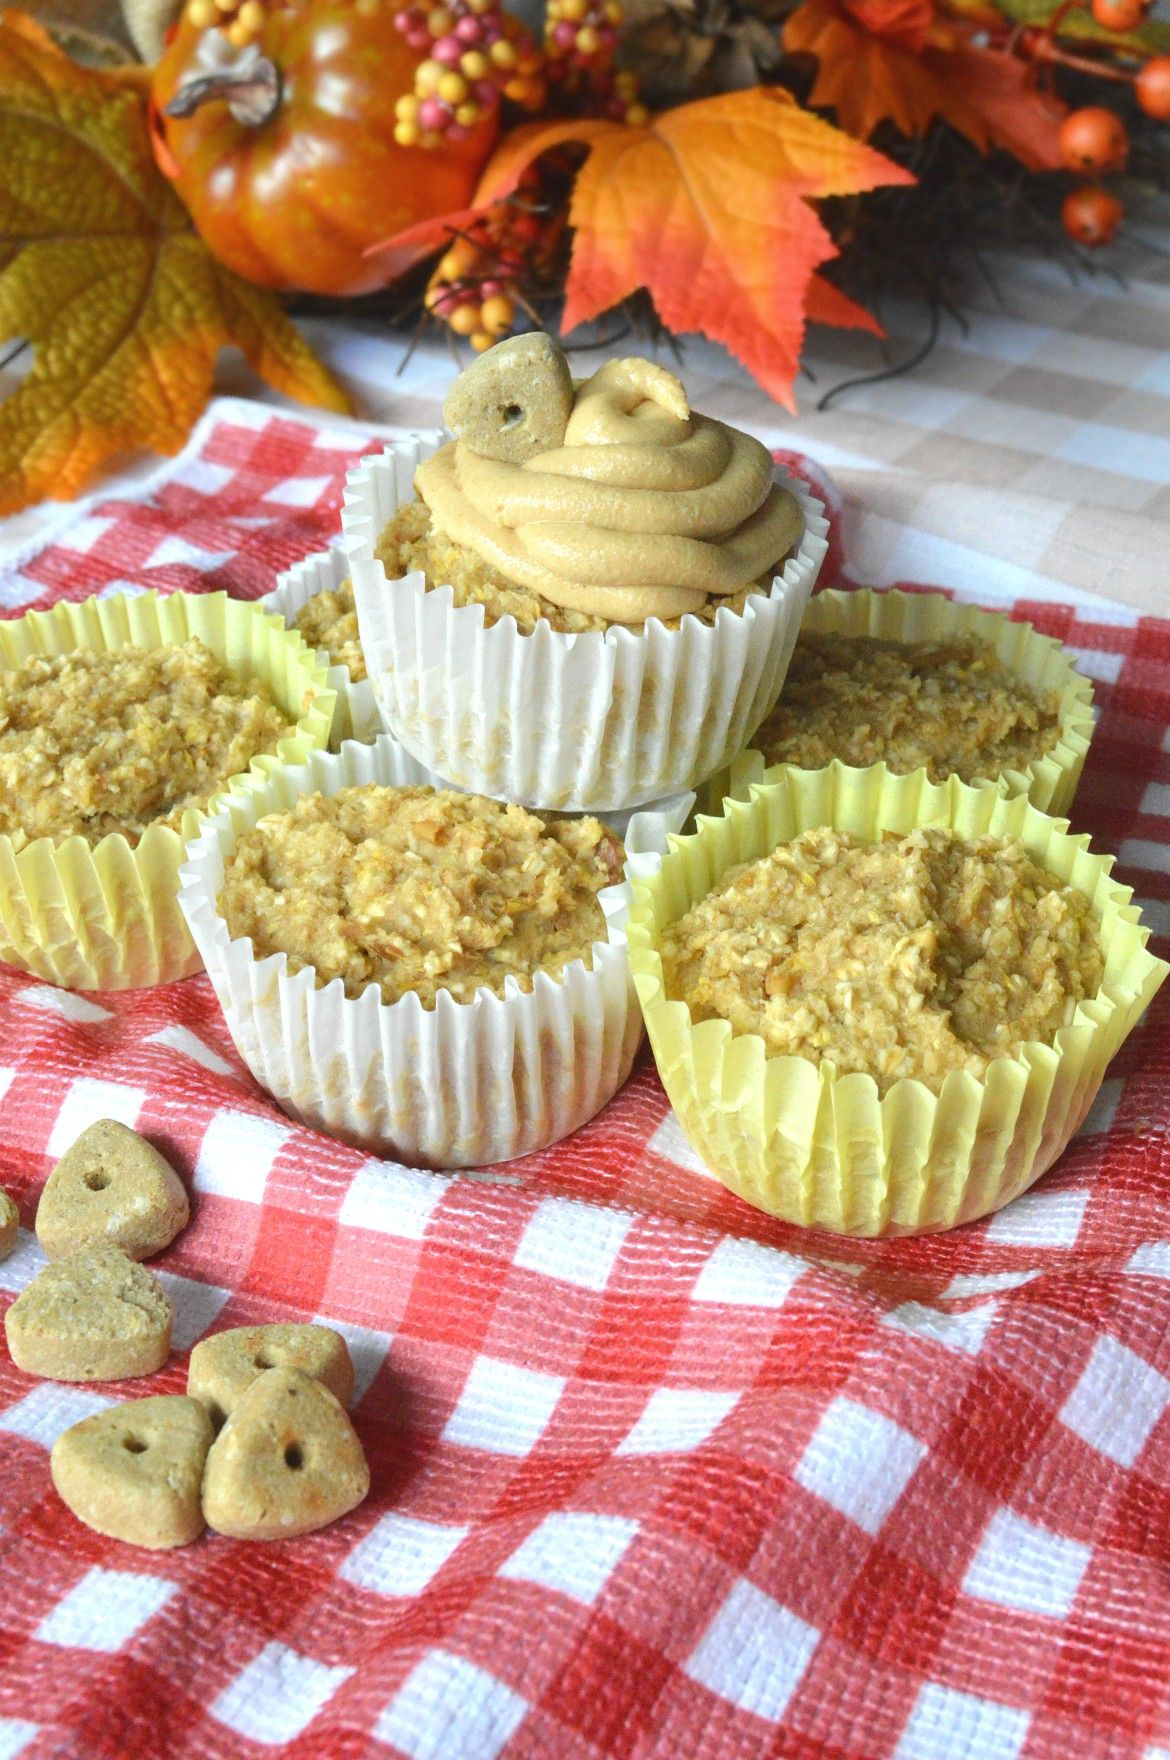 Healthy birthday cupcake recipe for dogs with apple